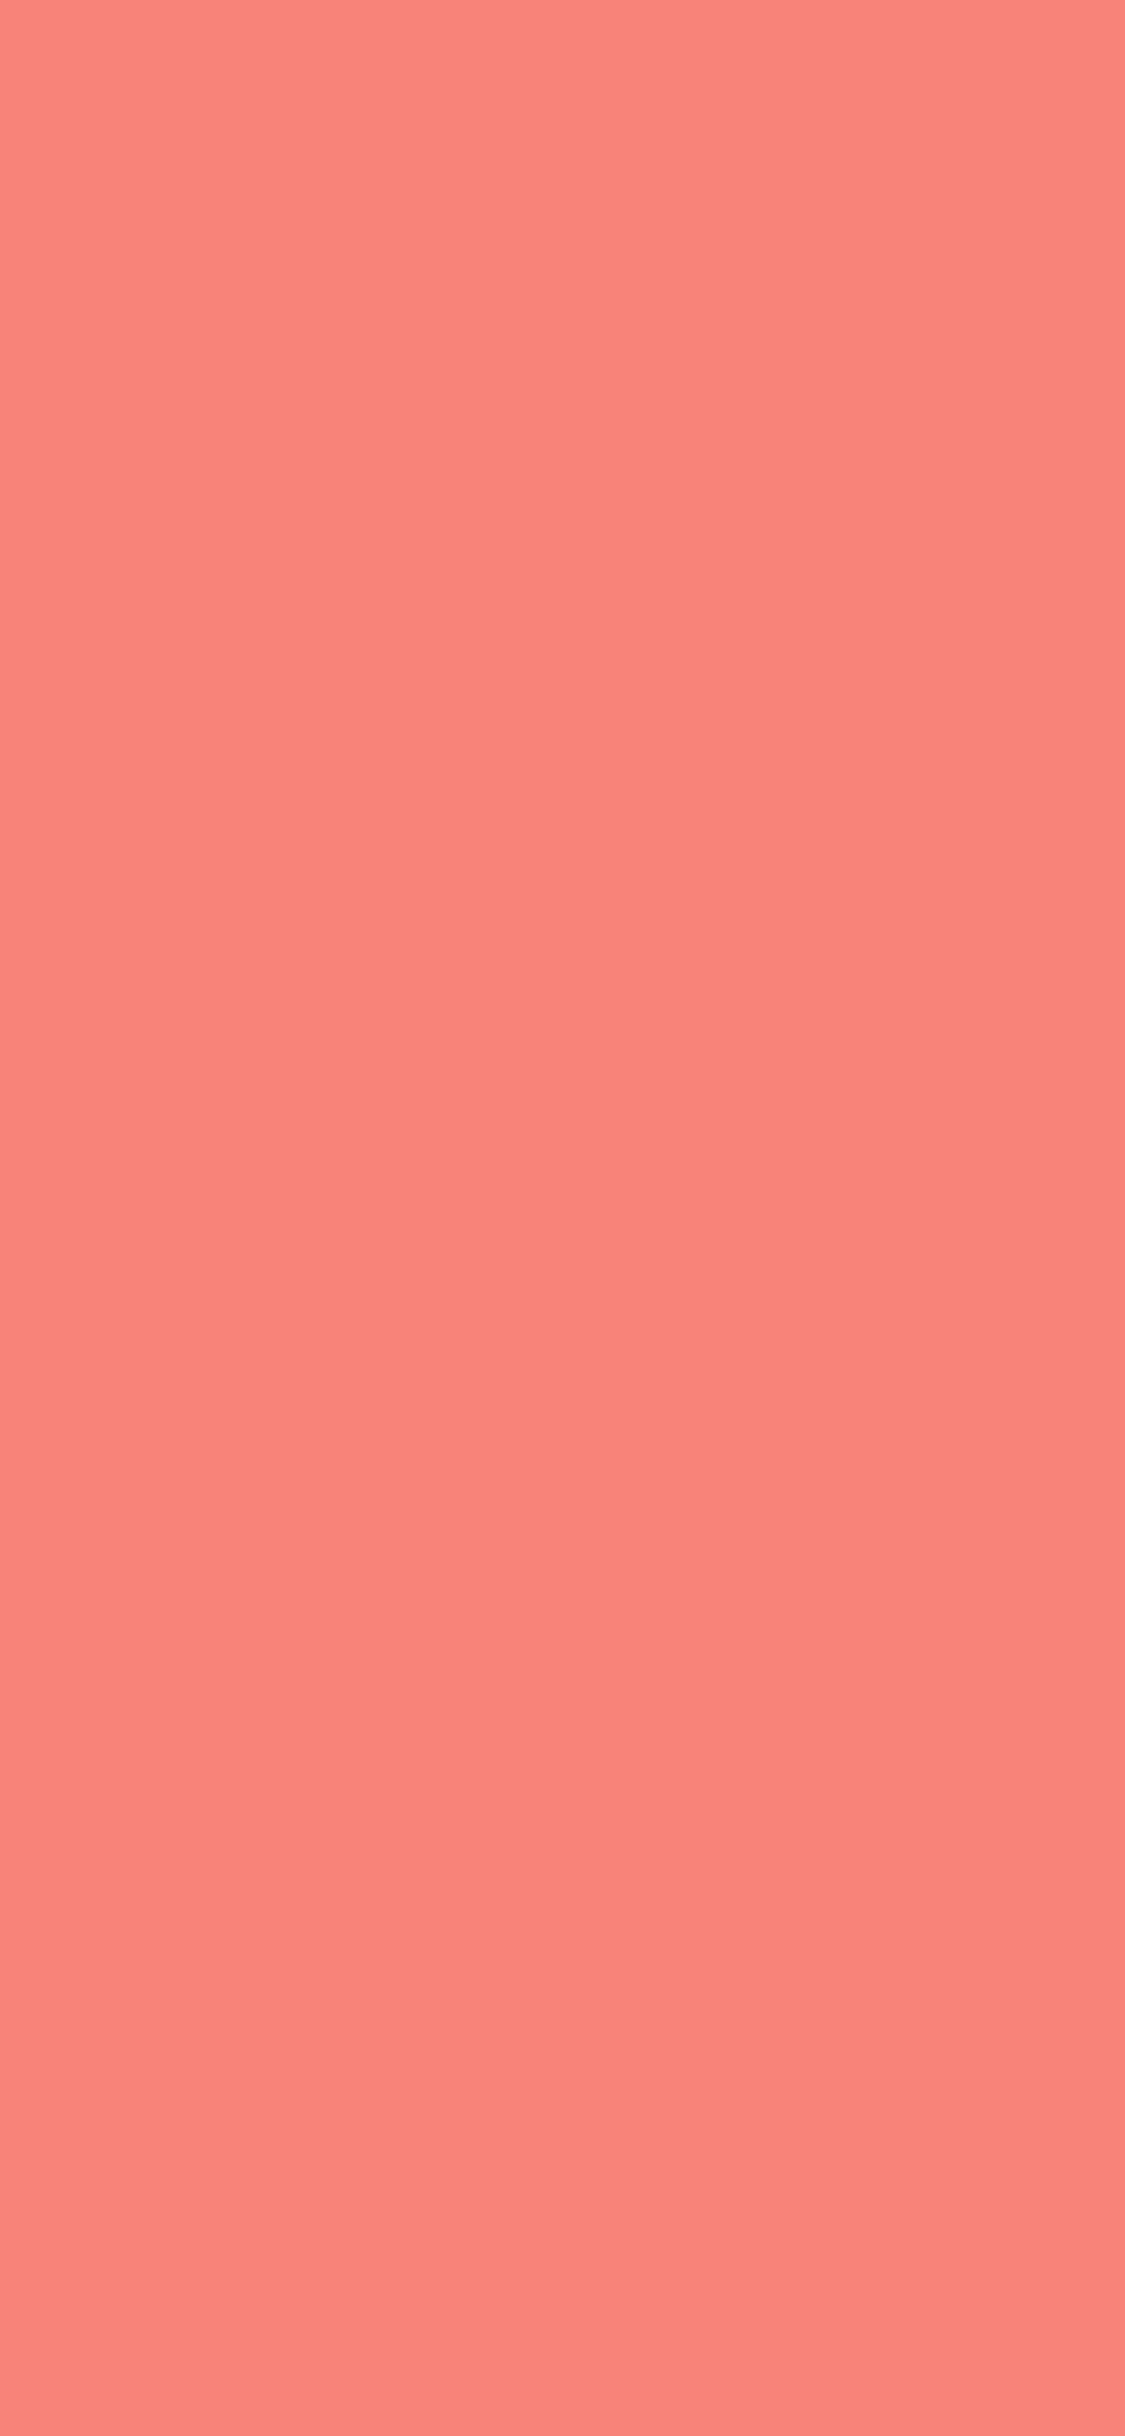 1125x2436 Tea Rose Orange Solid Color Background